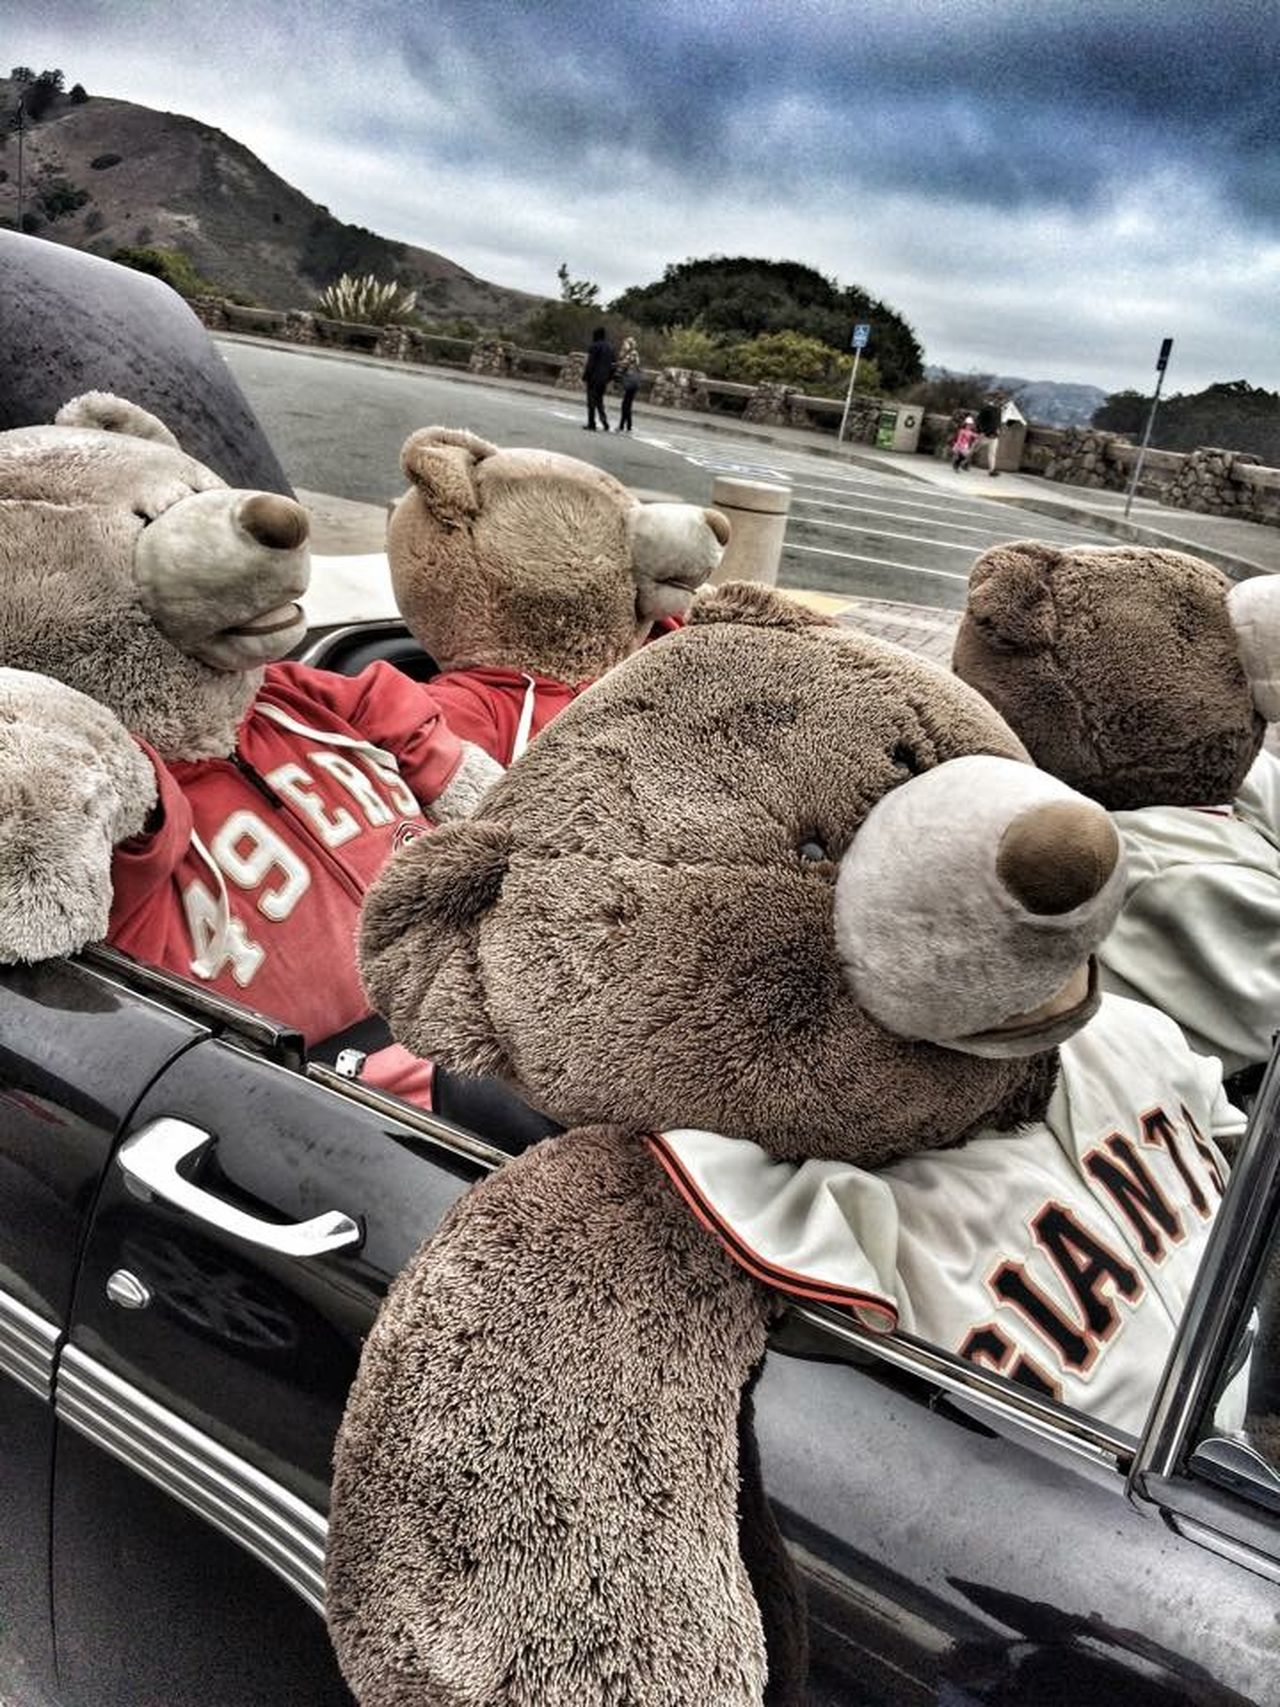 Sfgiants Sf49ers Bears In A Convertible Teddybear